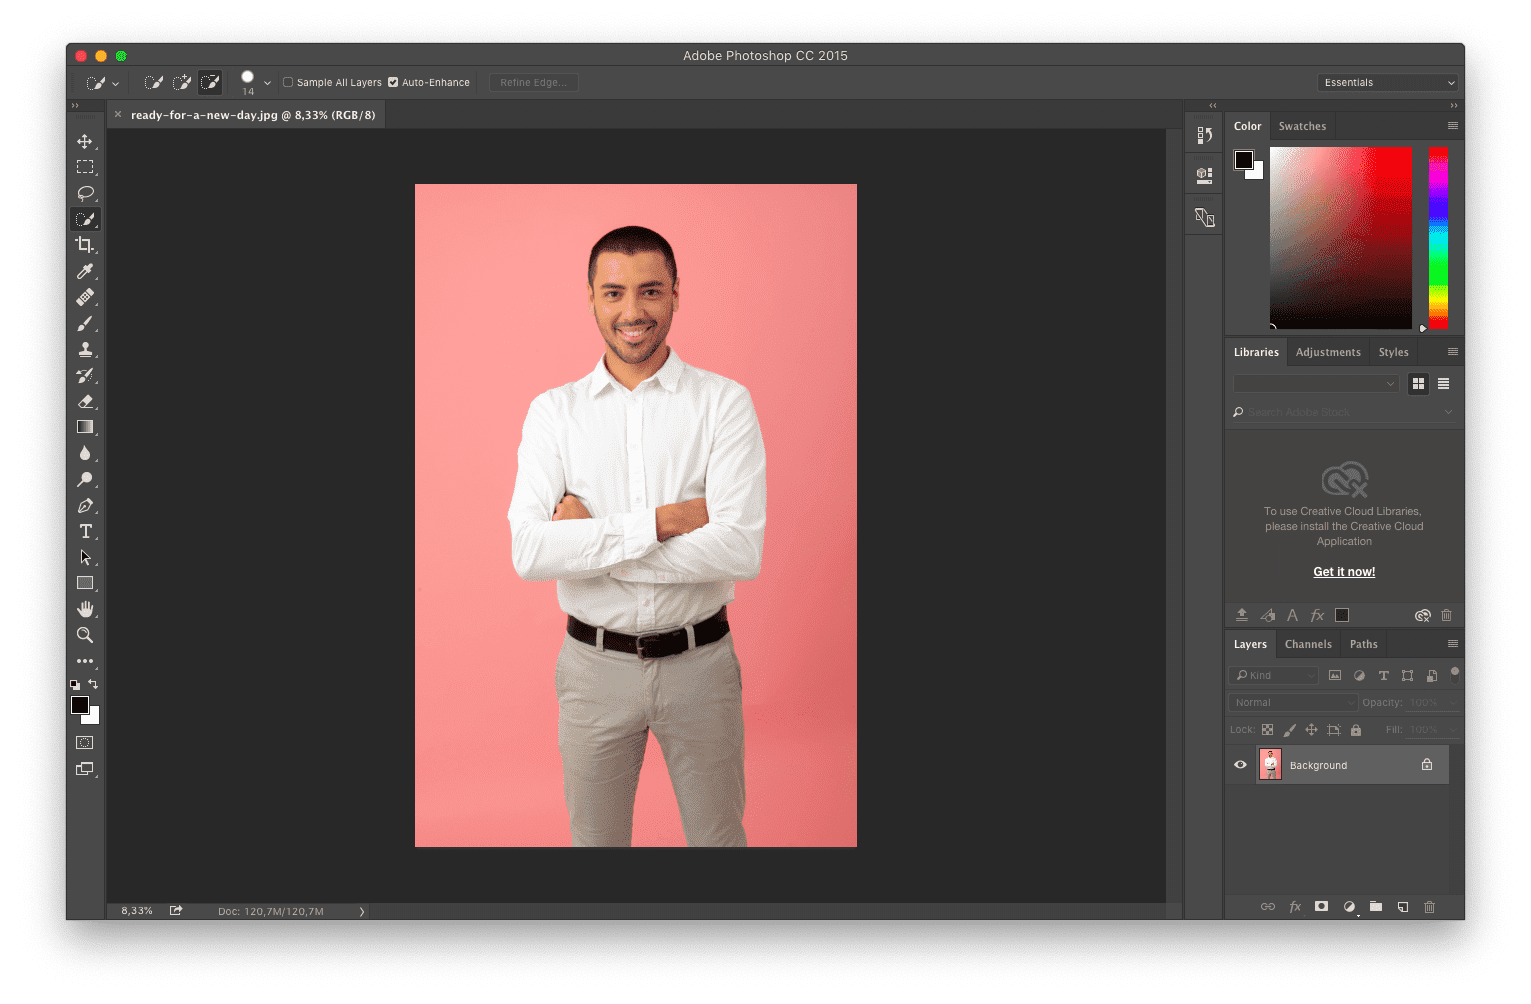 click the upload image button in Photoshop